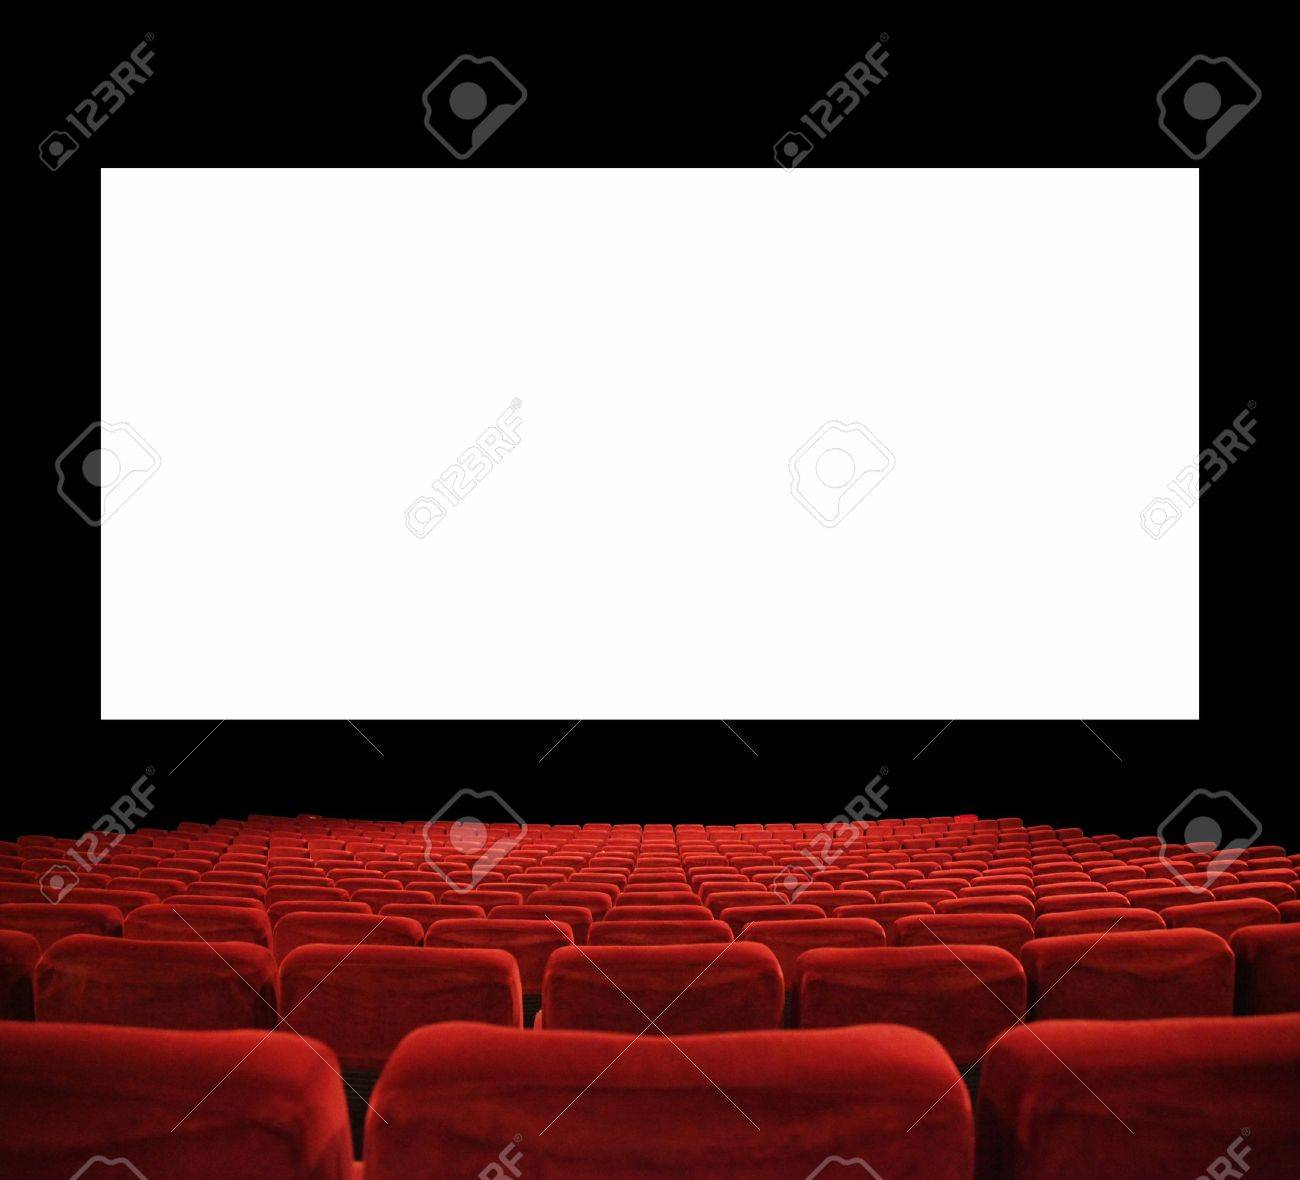 classic cinema with red seats Stock Photo - 12581384